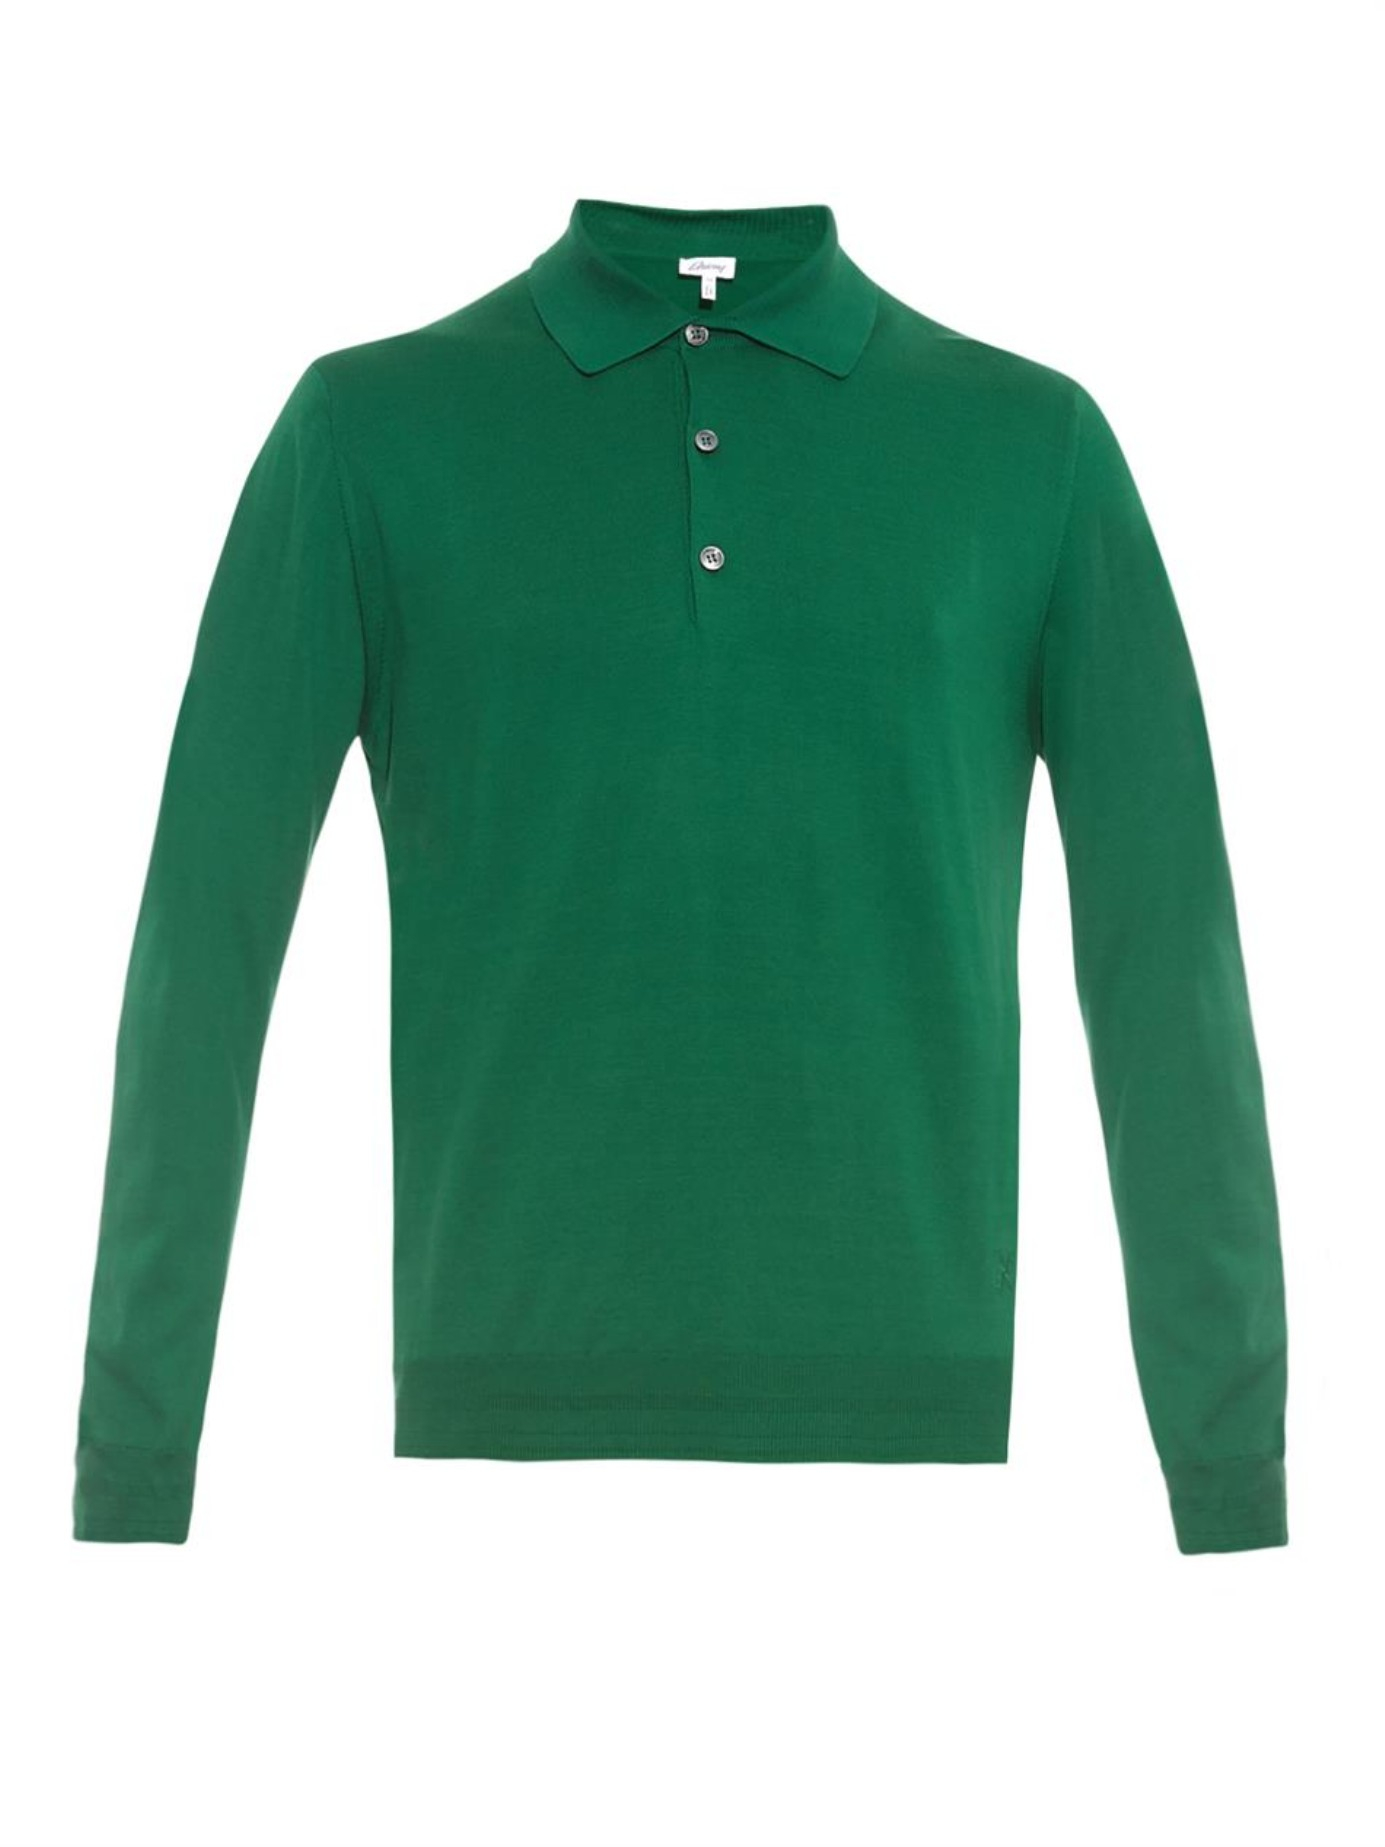 Vivienne Westwood T Shirt Brioni Long Sleeved Cotton Polo Shirt In Green For Men Lyst